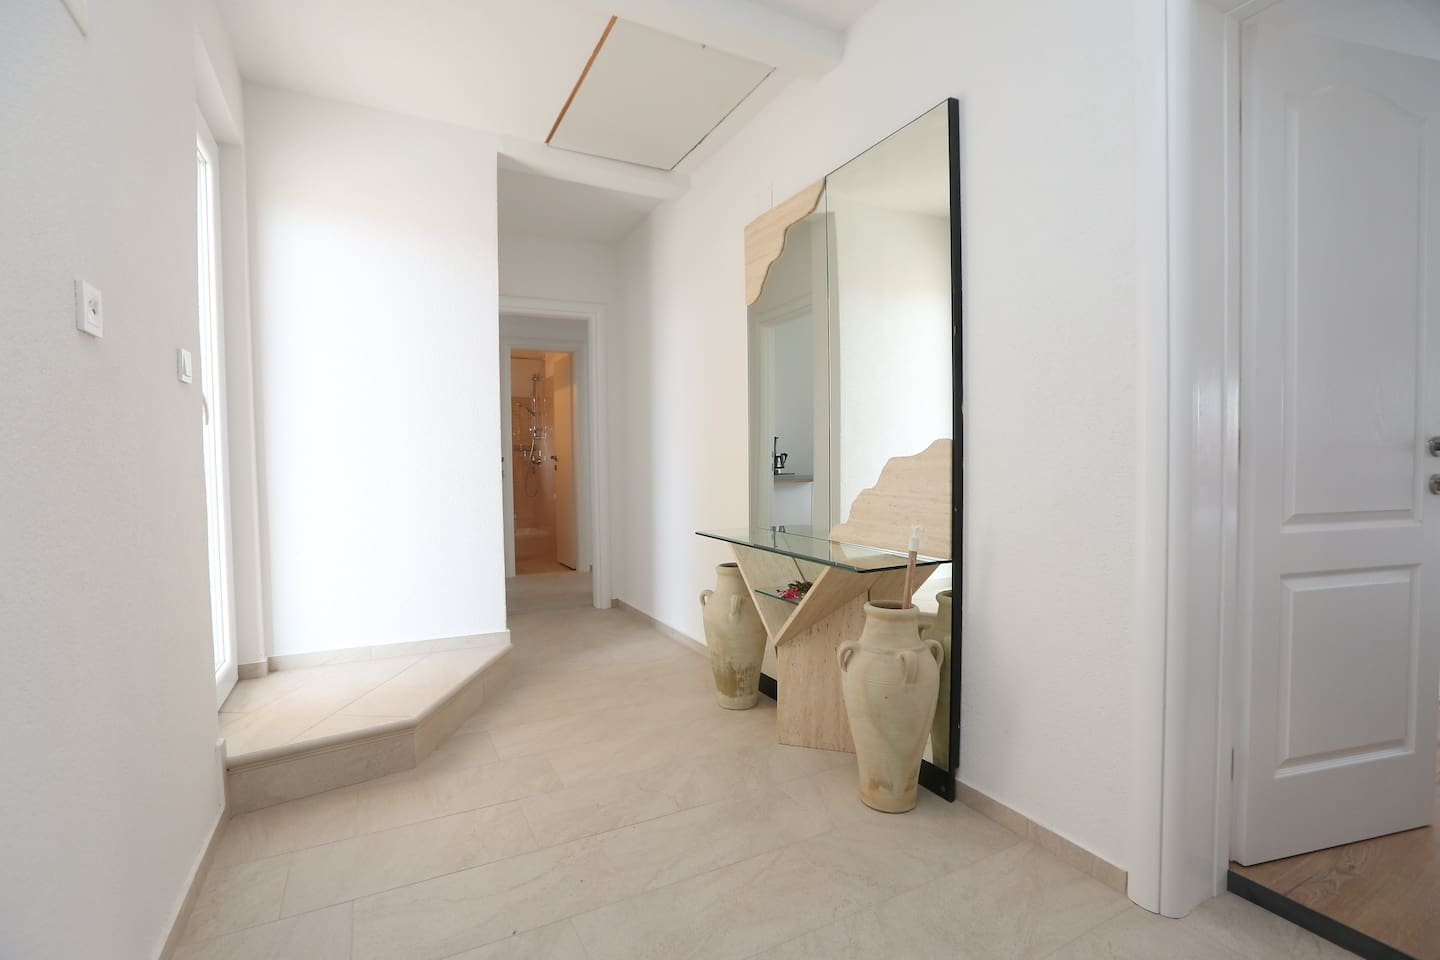 Apartment 3- This double bedroom has access to the terrace.